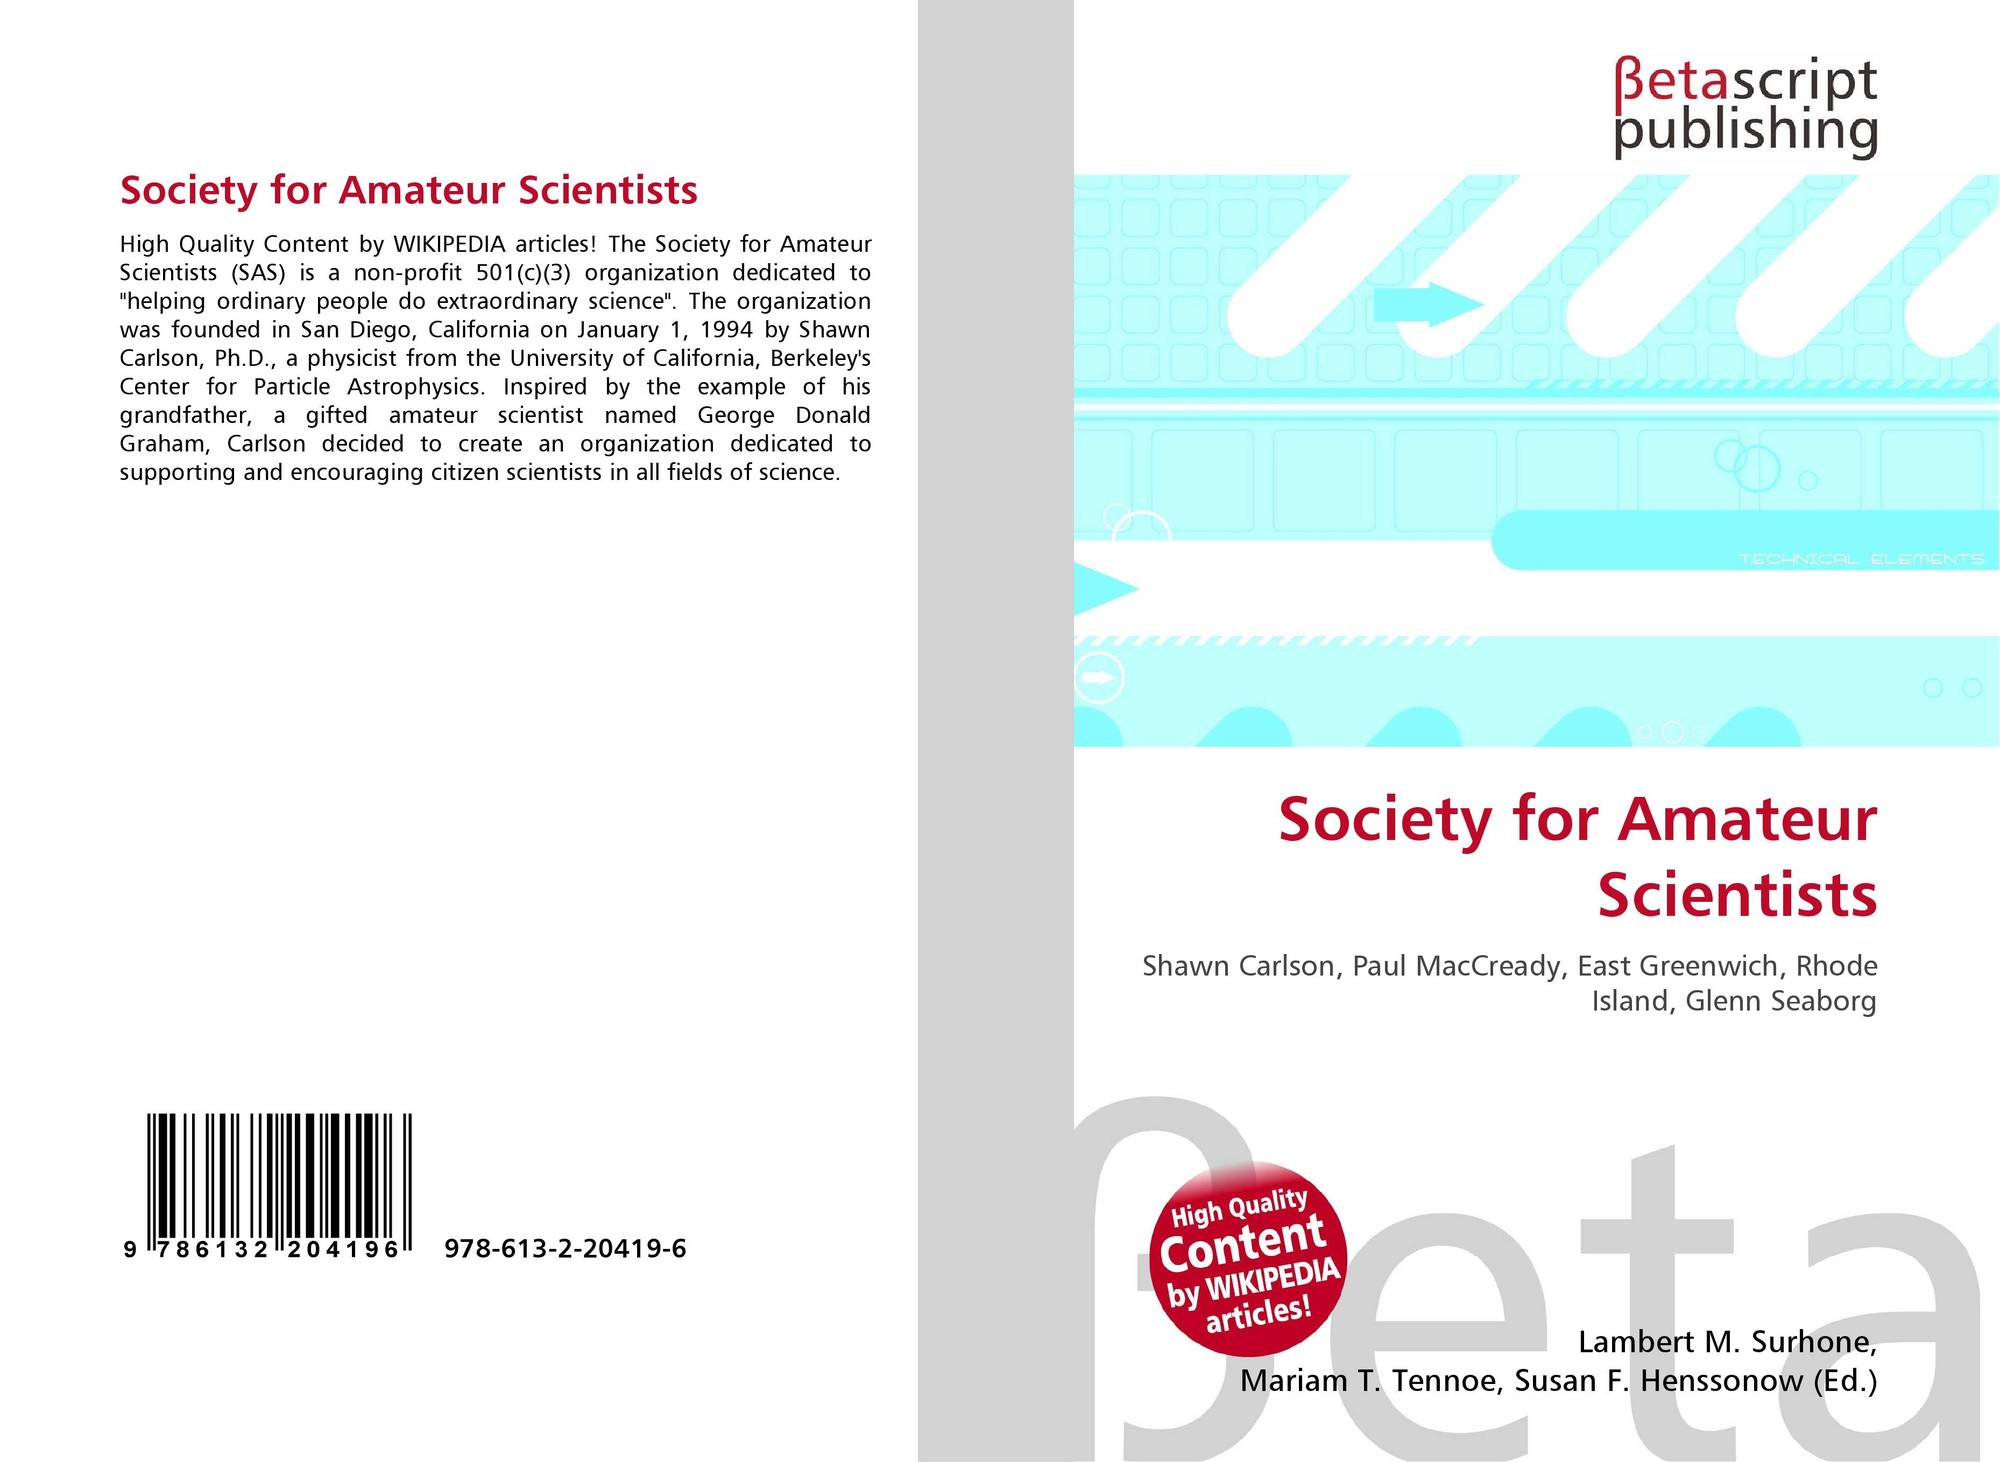 Society of amateur scientists